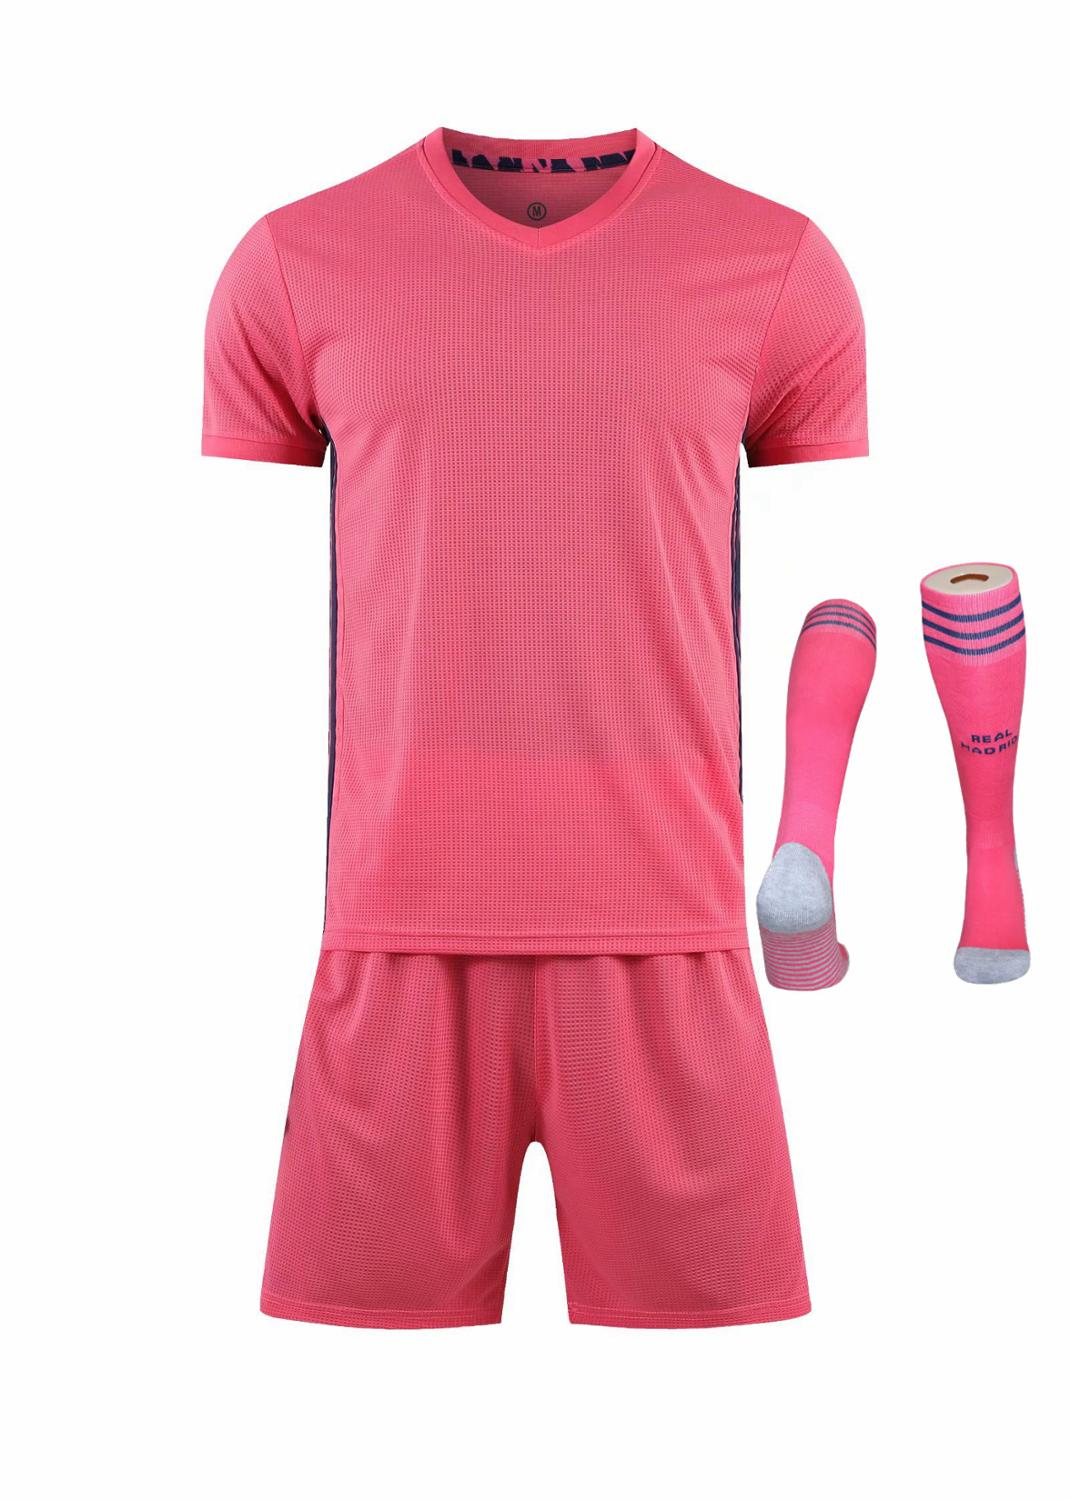 Children Sets football uniforms boys and girls sports kids youth training suits blank custom print soccer set with socks 18